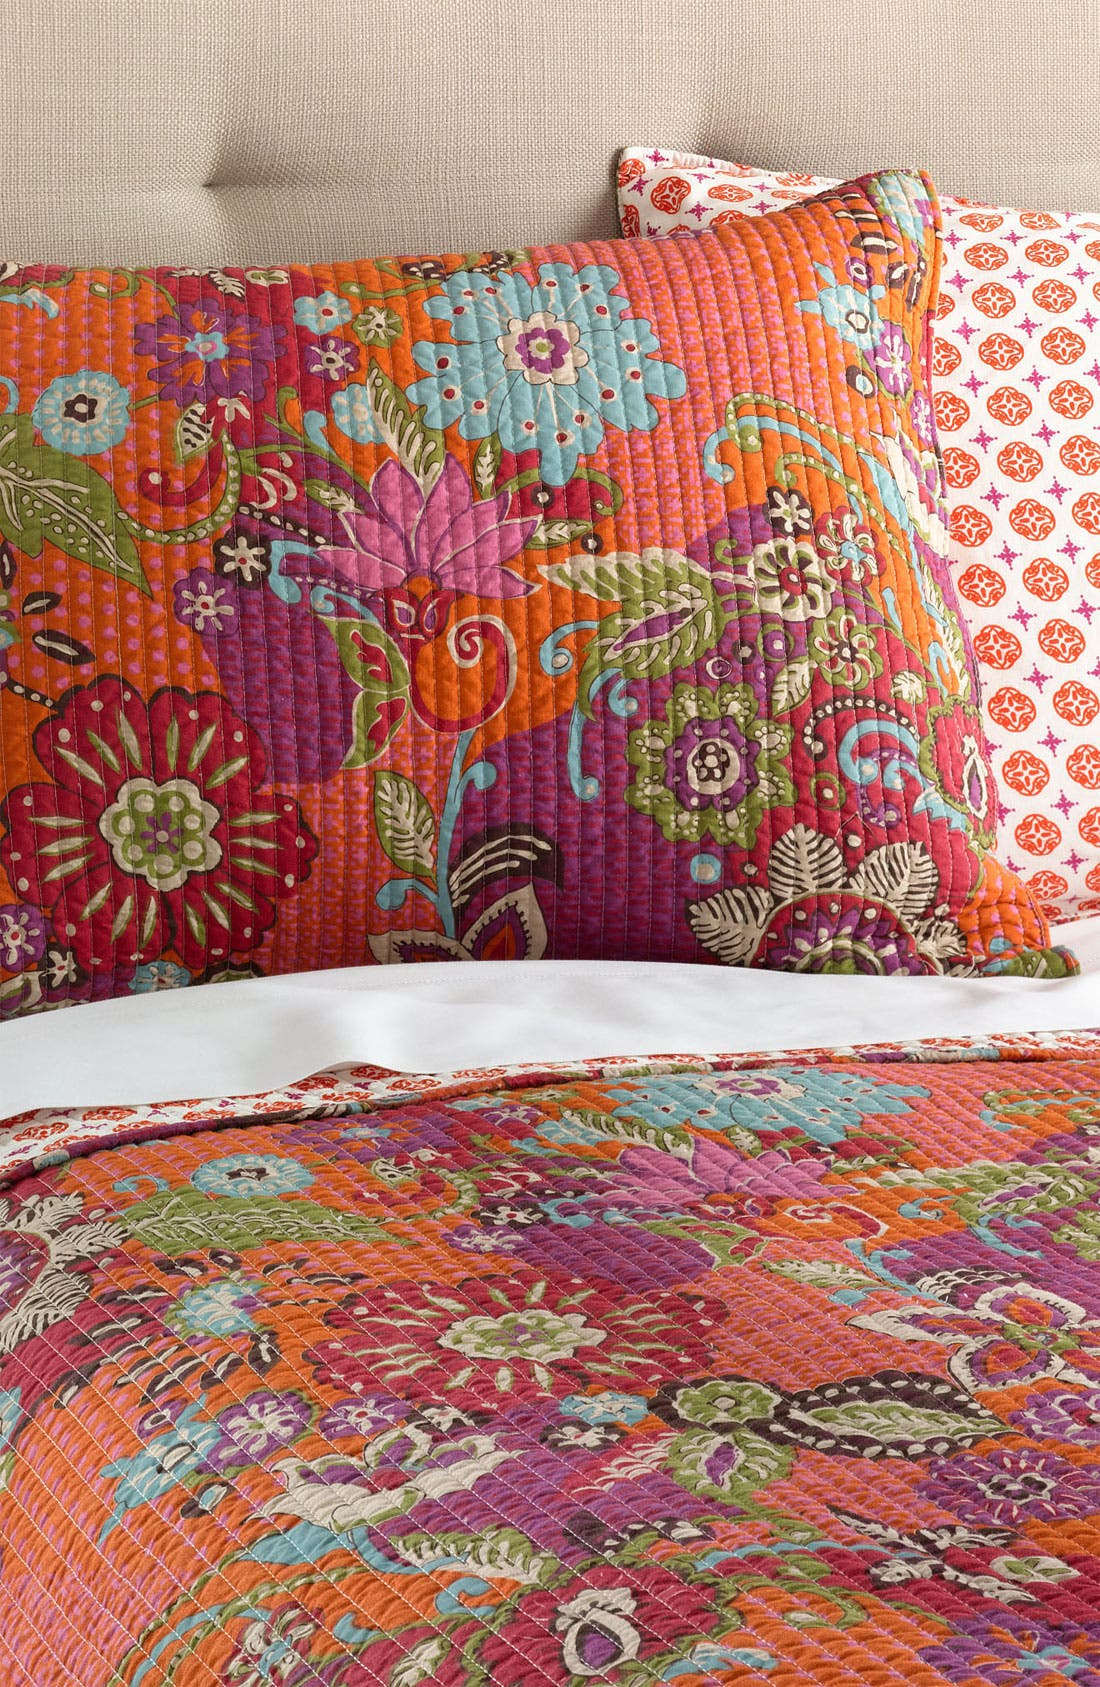 Alternate Image 1 Selected - Levtex 'Shinjuku' Quilted Pillow Sham